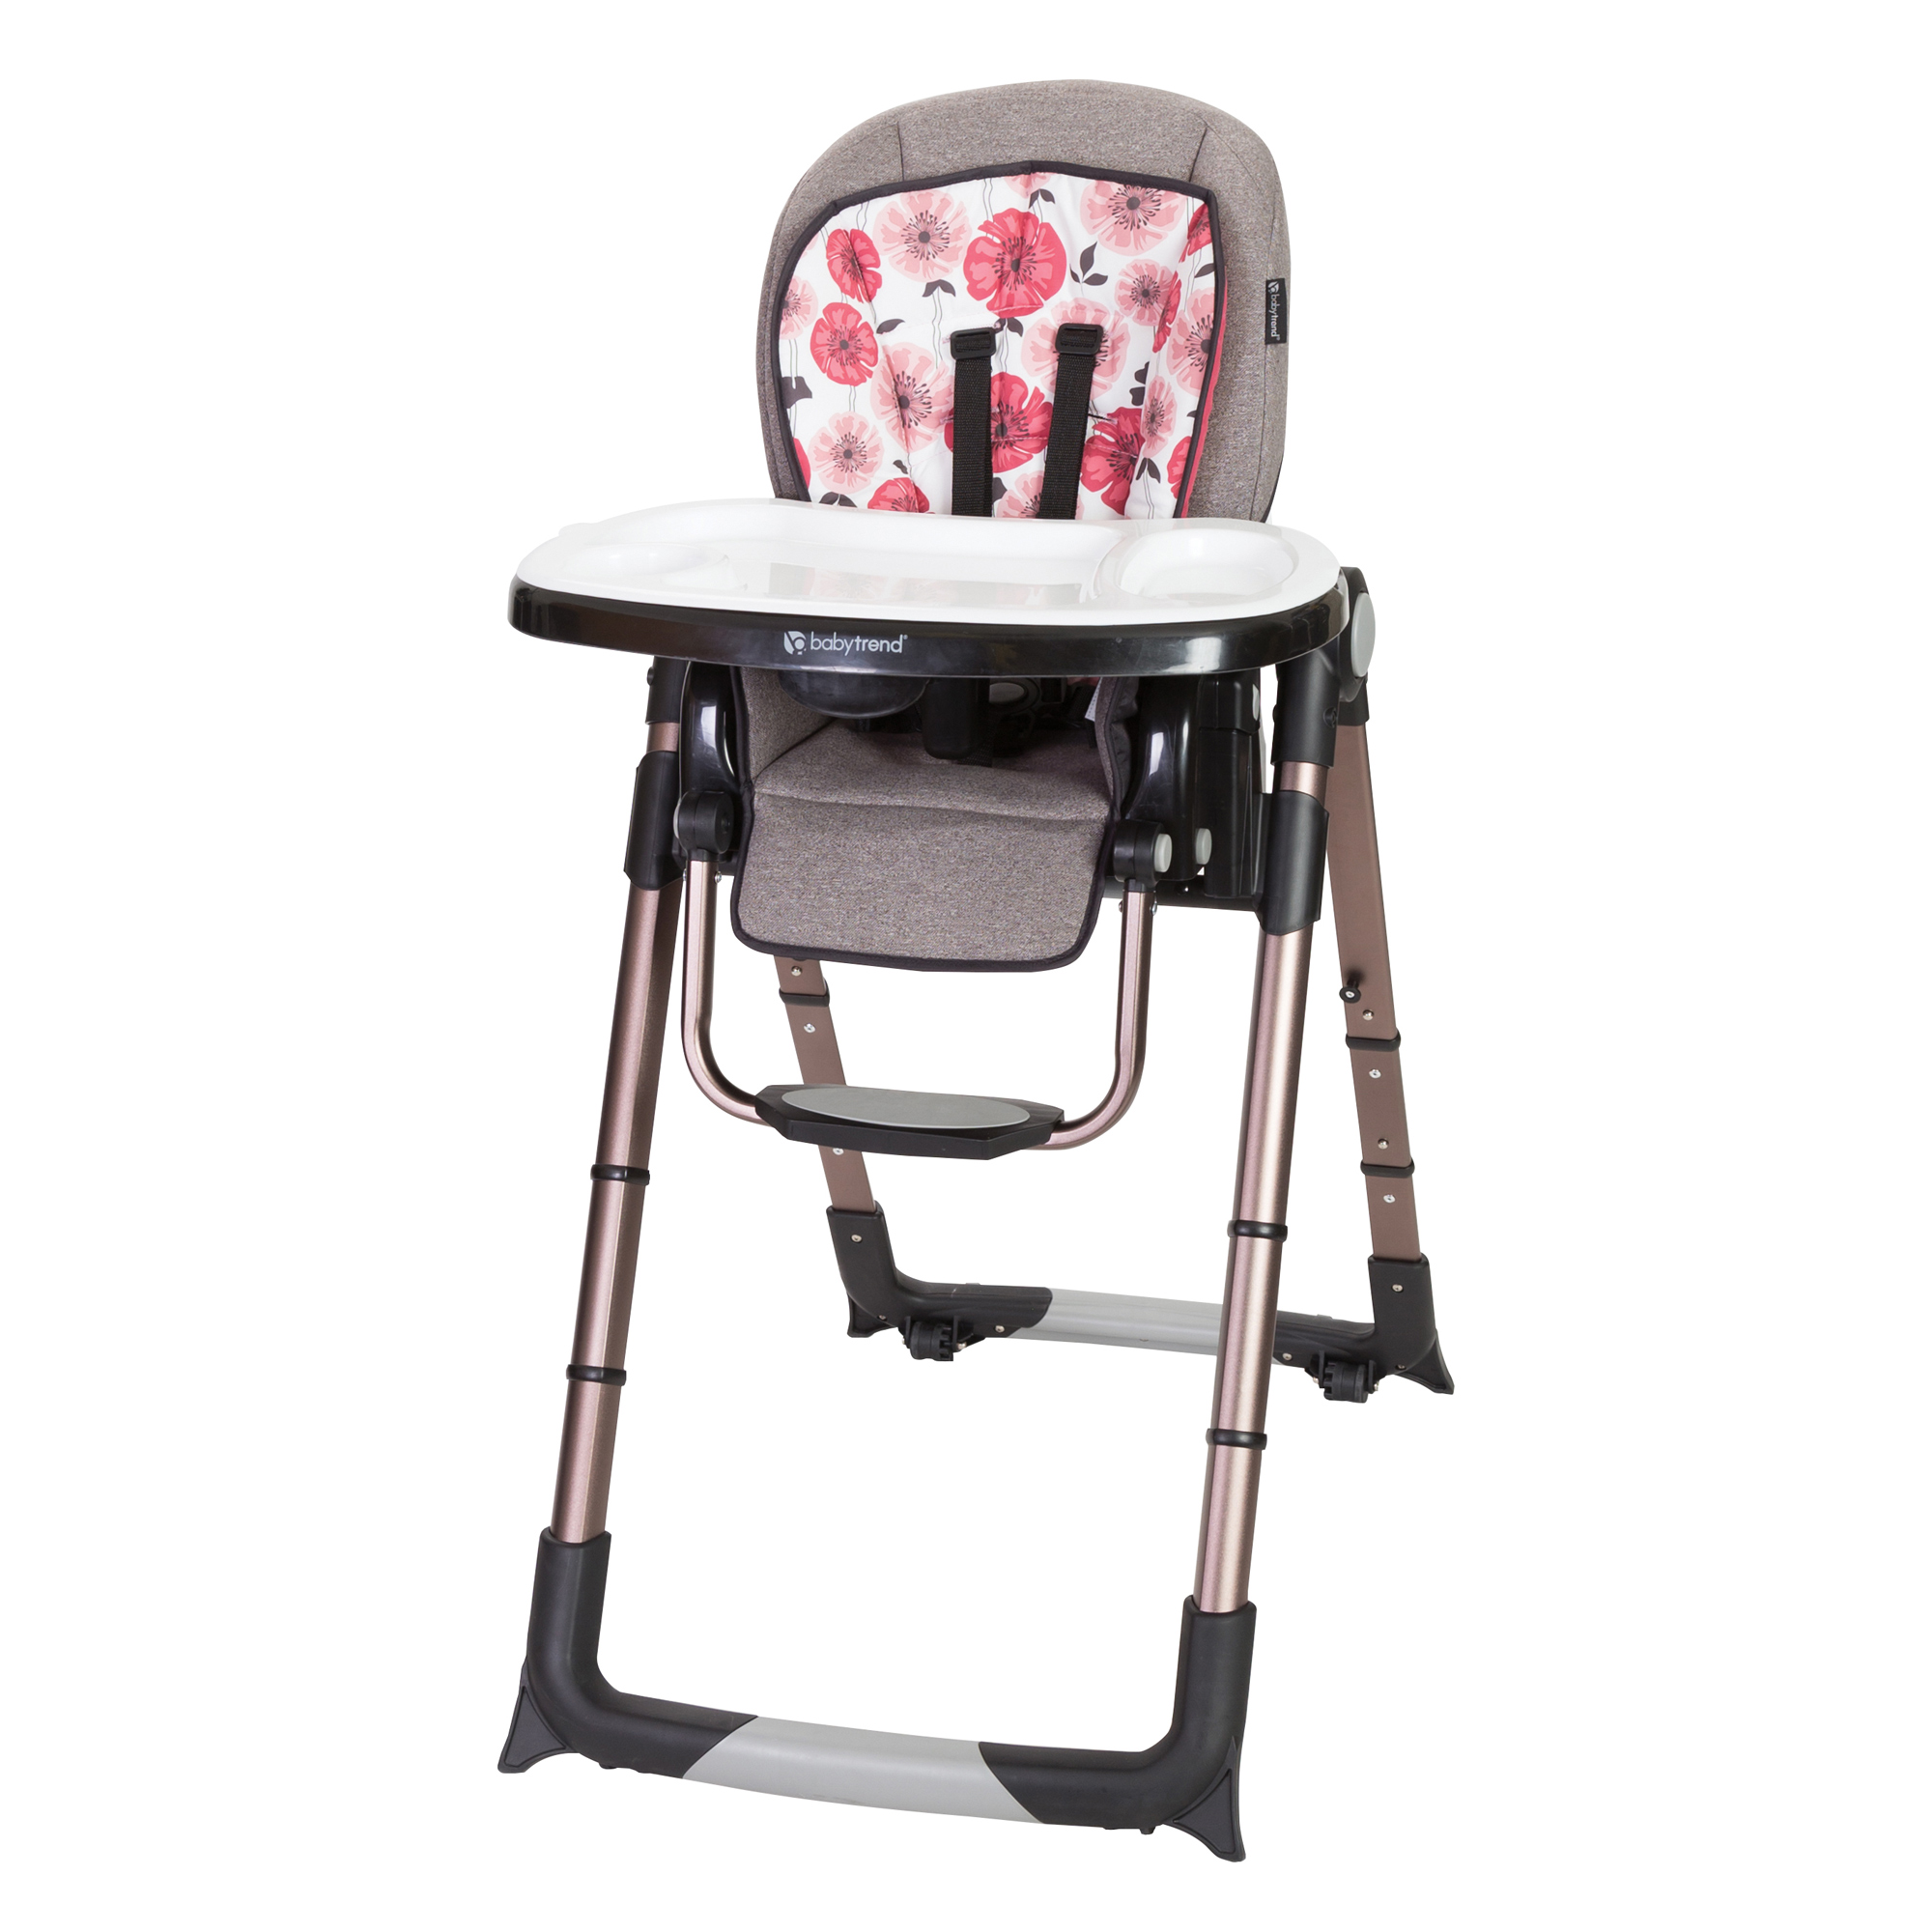 Baby Trend Go-Lite 5-in-1 Feeding Center, Rose Gold